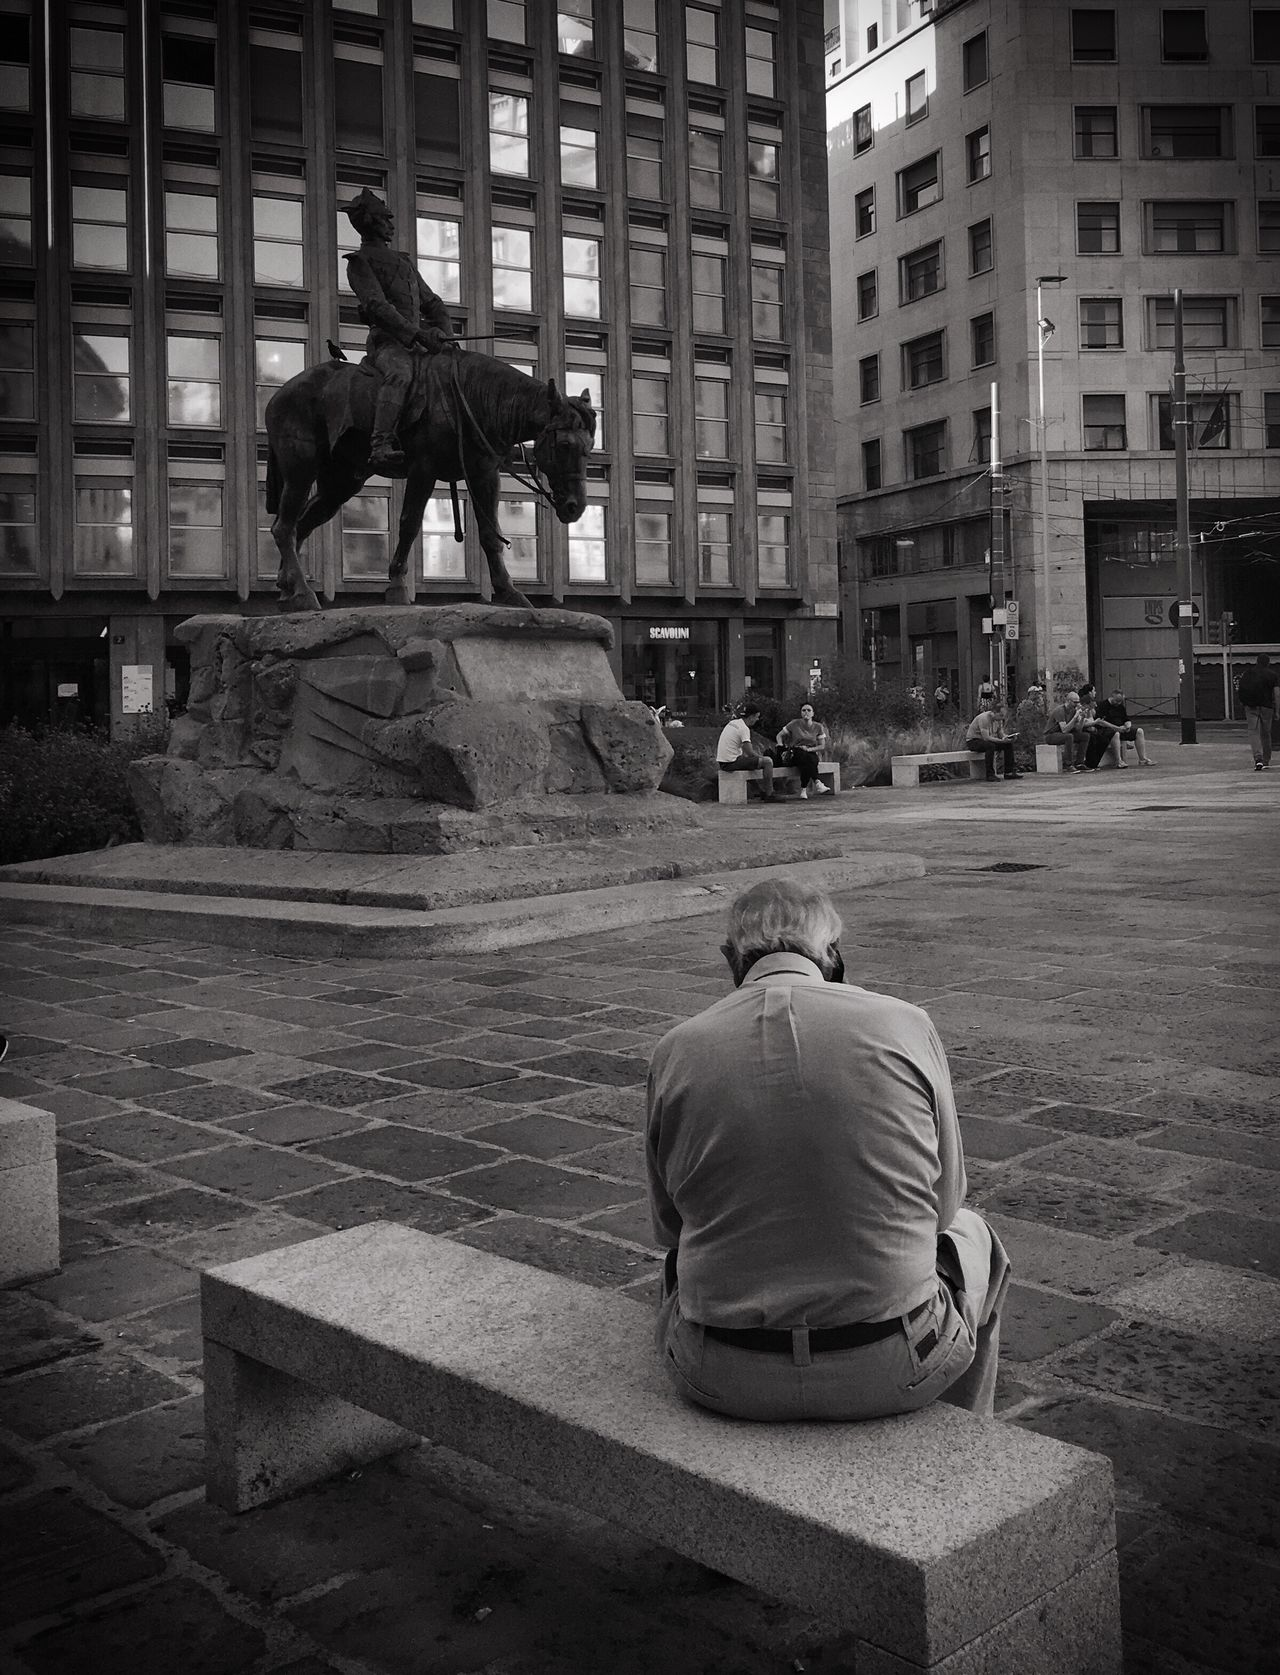 Statue Man Sitting Man Sitting On A Bench Bench Blackandwhite Photography Black And White Photography B&w Street Photography Statues People And Places Monochrome Photography